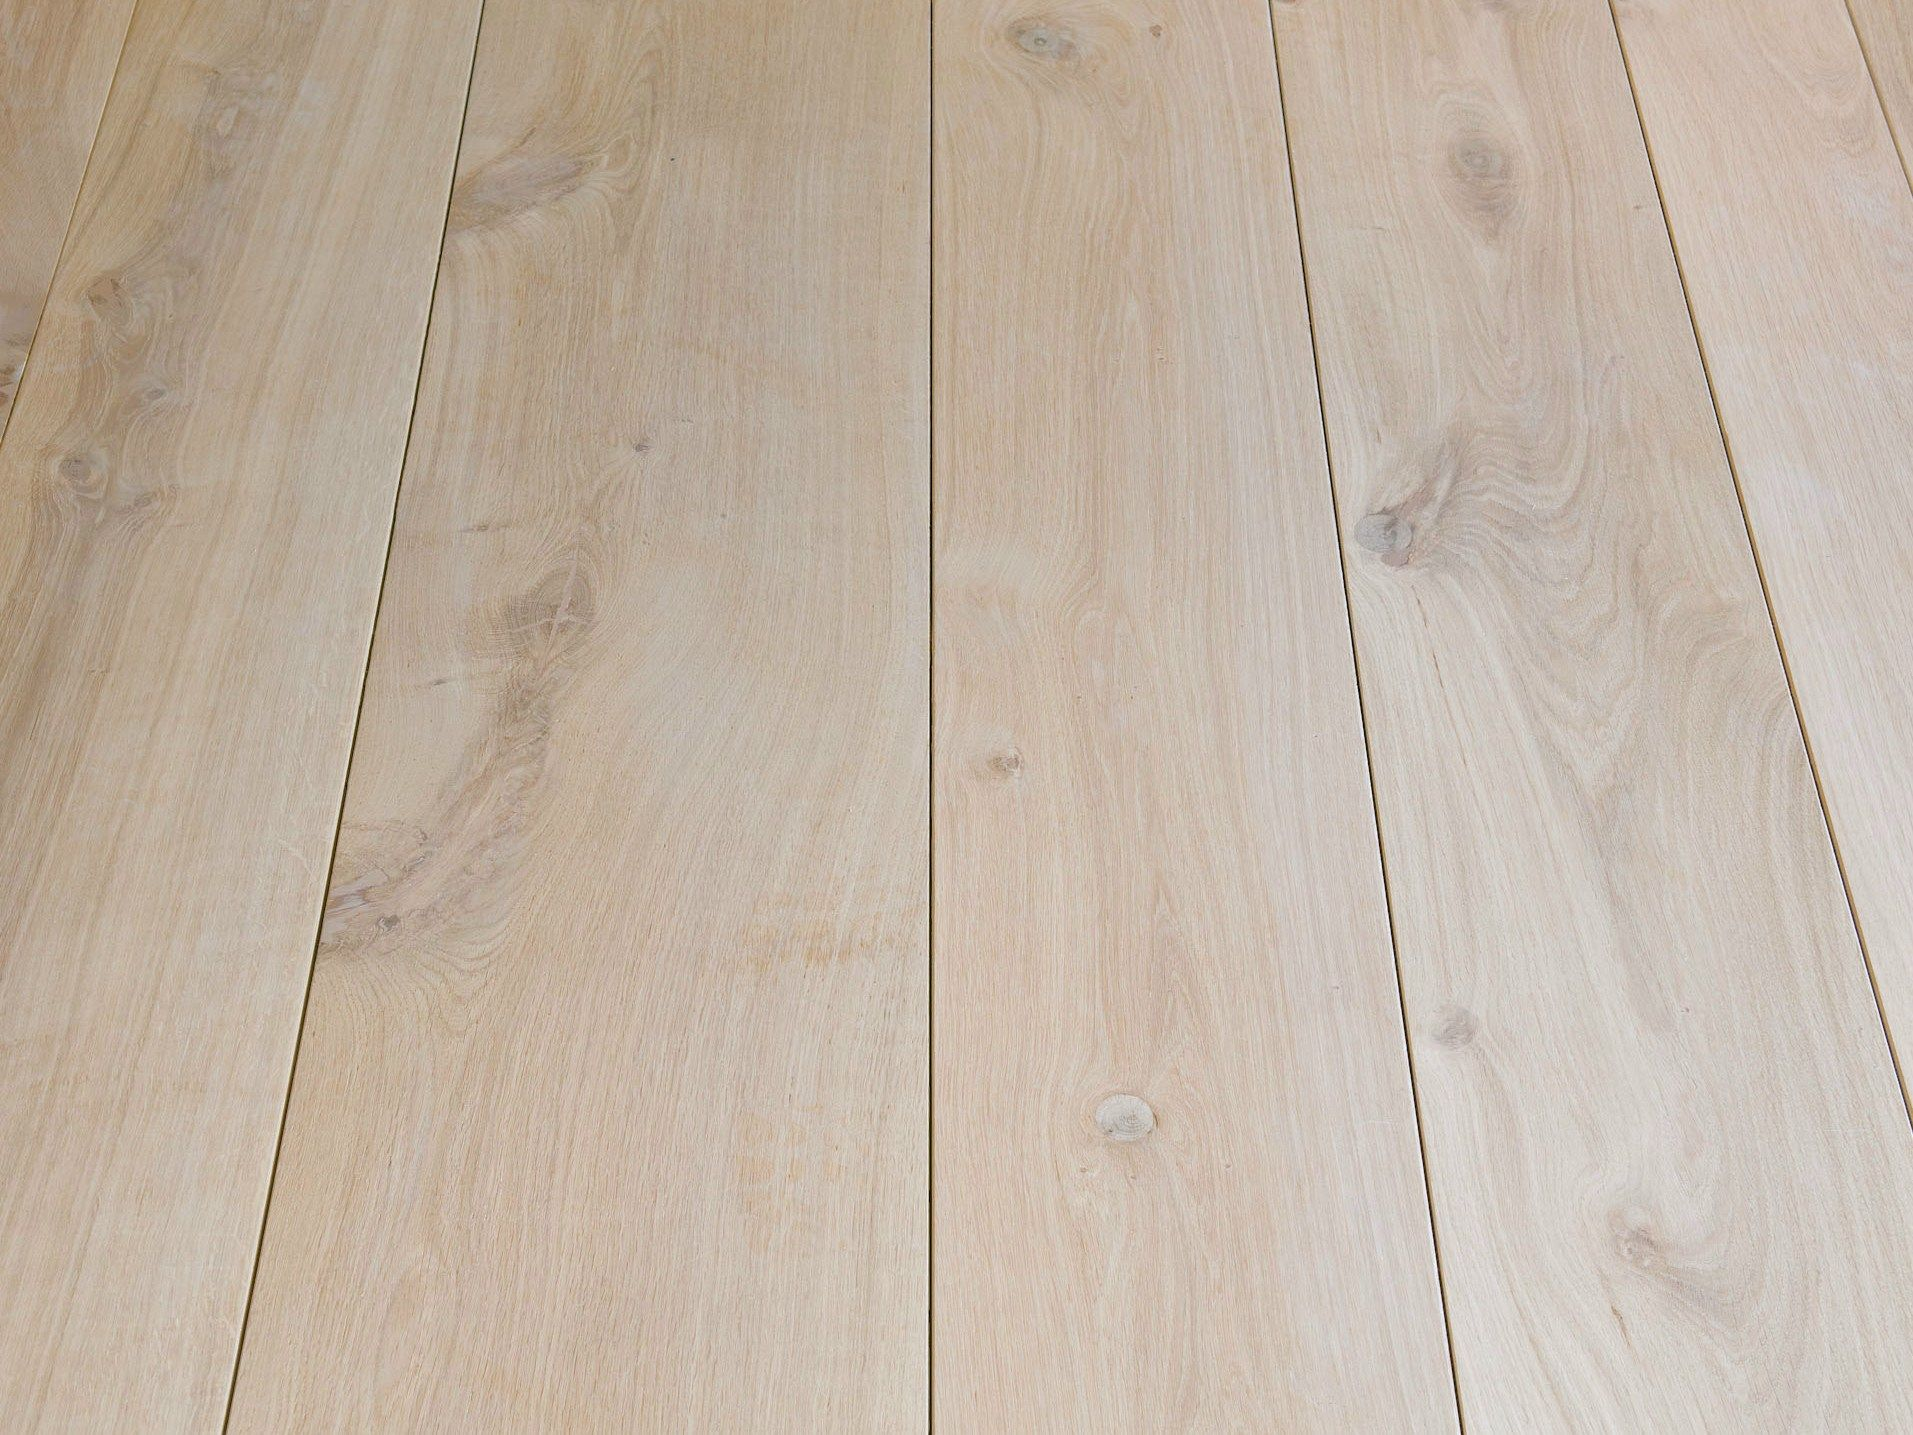 eiche dielen eiche dielen by pur natur | arch - floor - wood in 2018